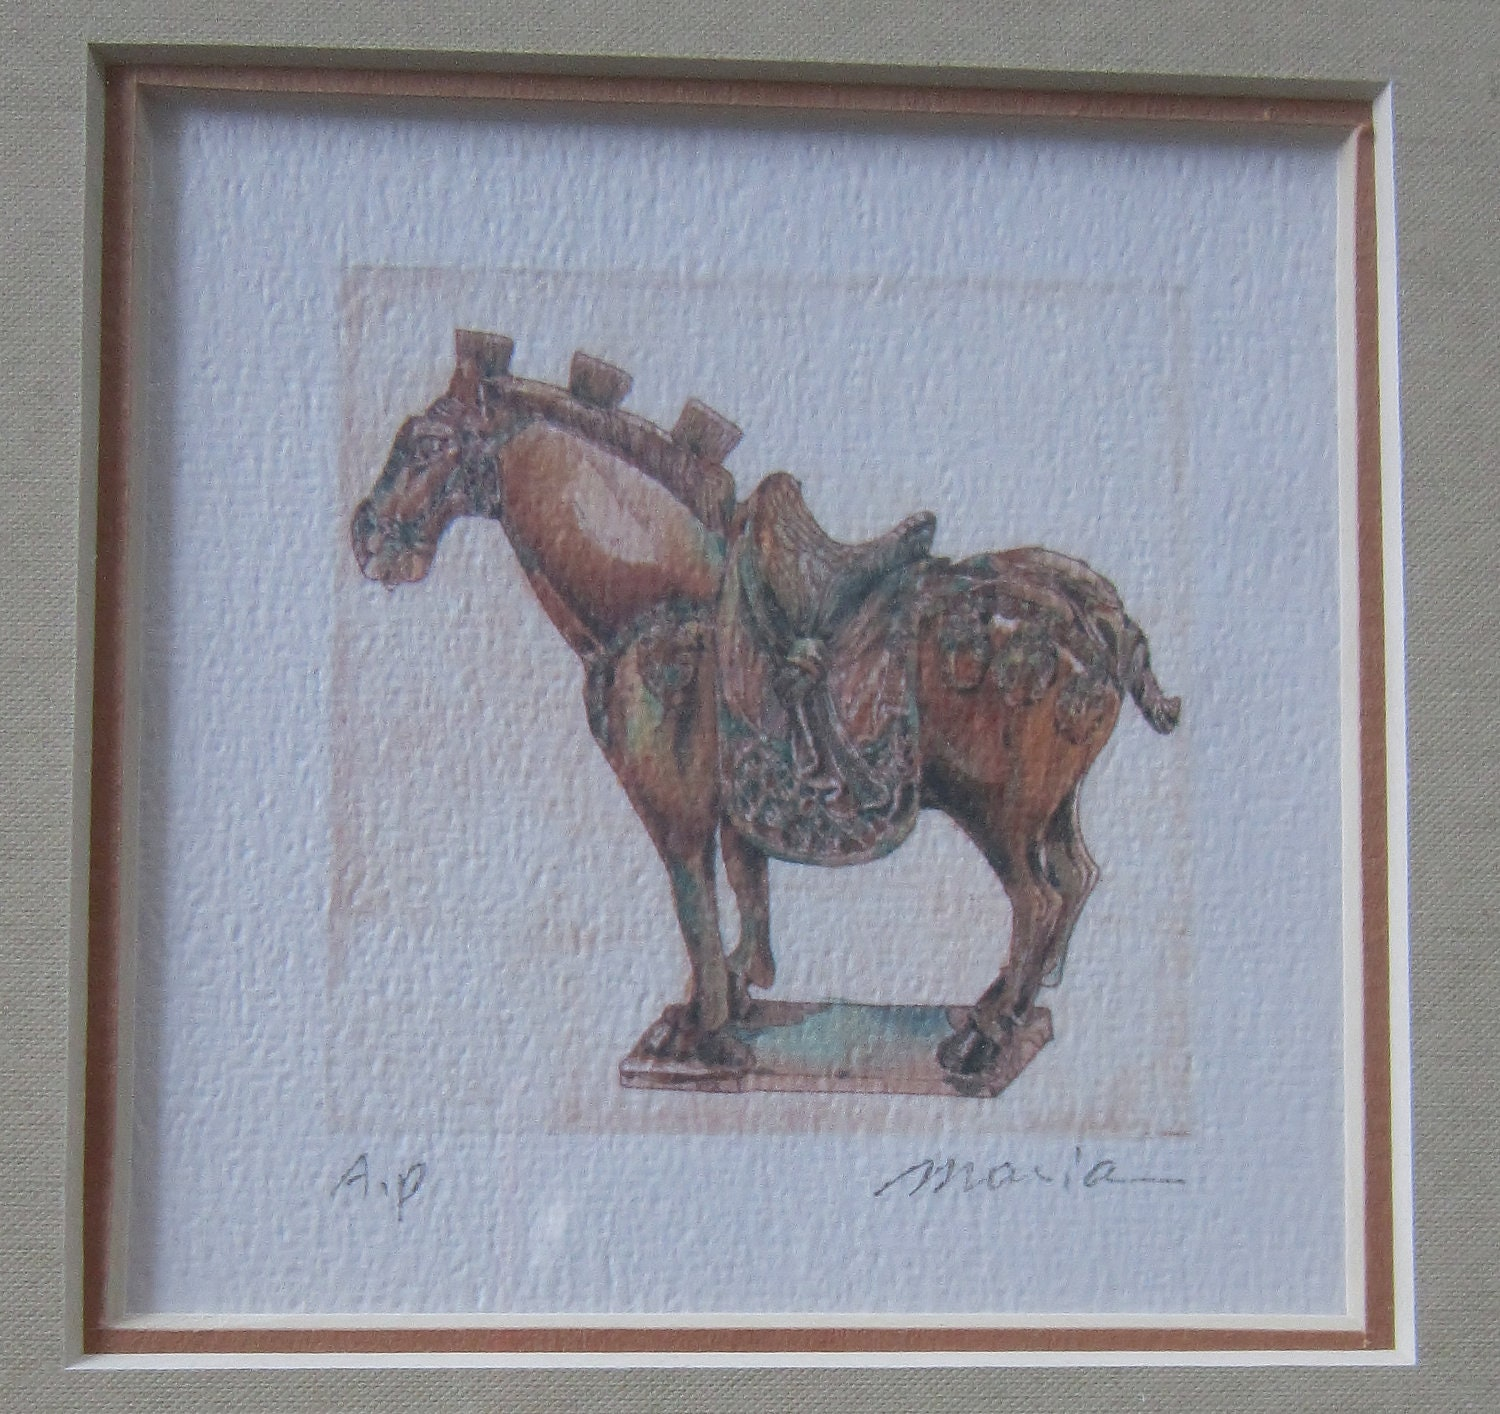 Vintage Asian Tang Horse 895 - Original Frame - Signed by Artsit Hung Ci Yee Moria - VistaChick